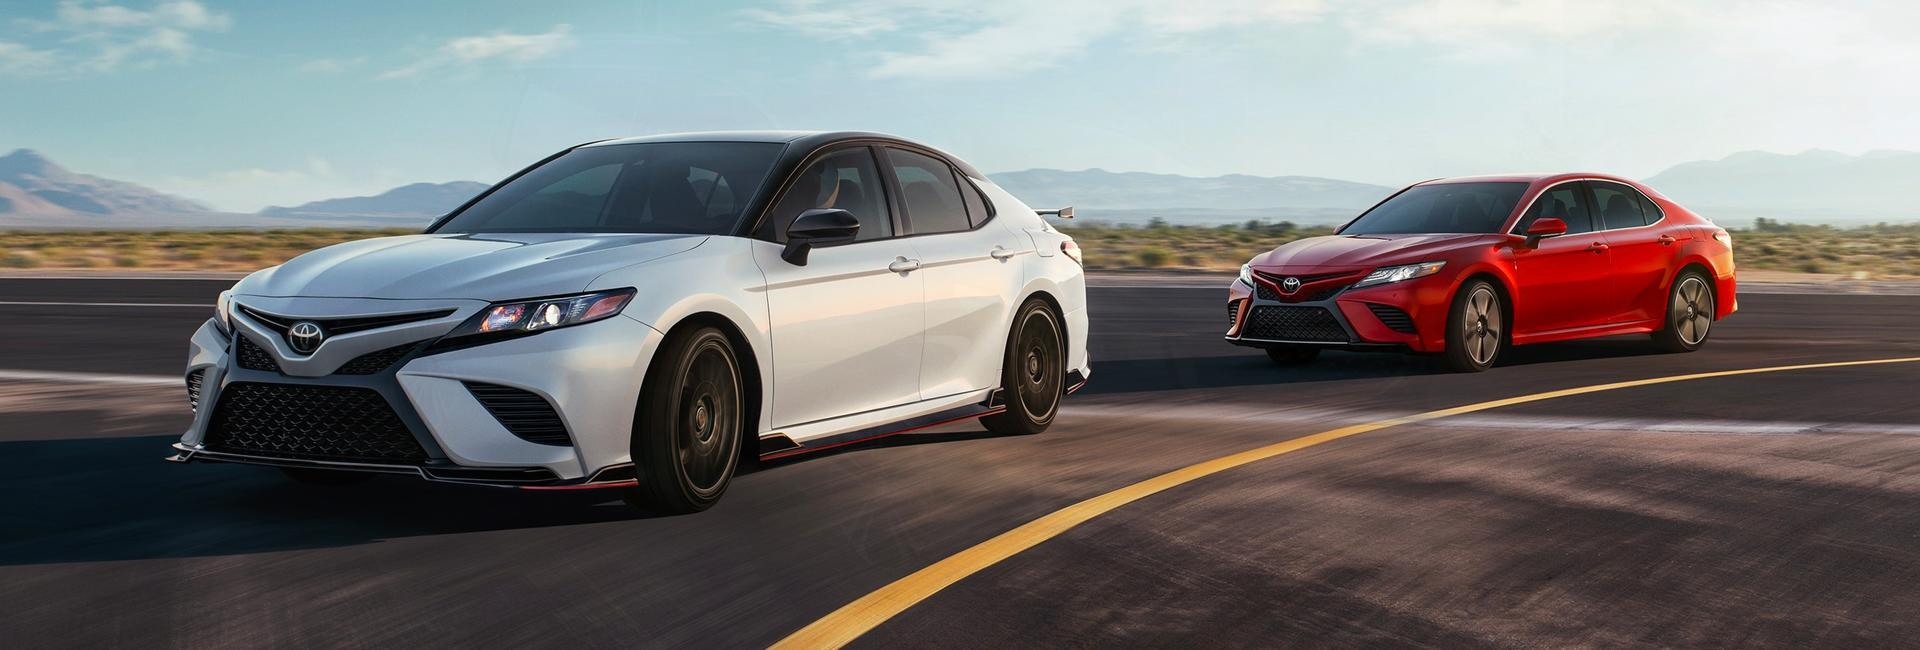 Picture of the 2020 Toyota Camry for sale at Spitzer Toyota Monroeville PA